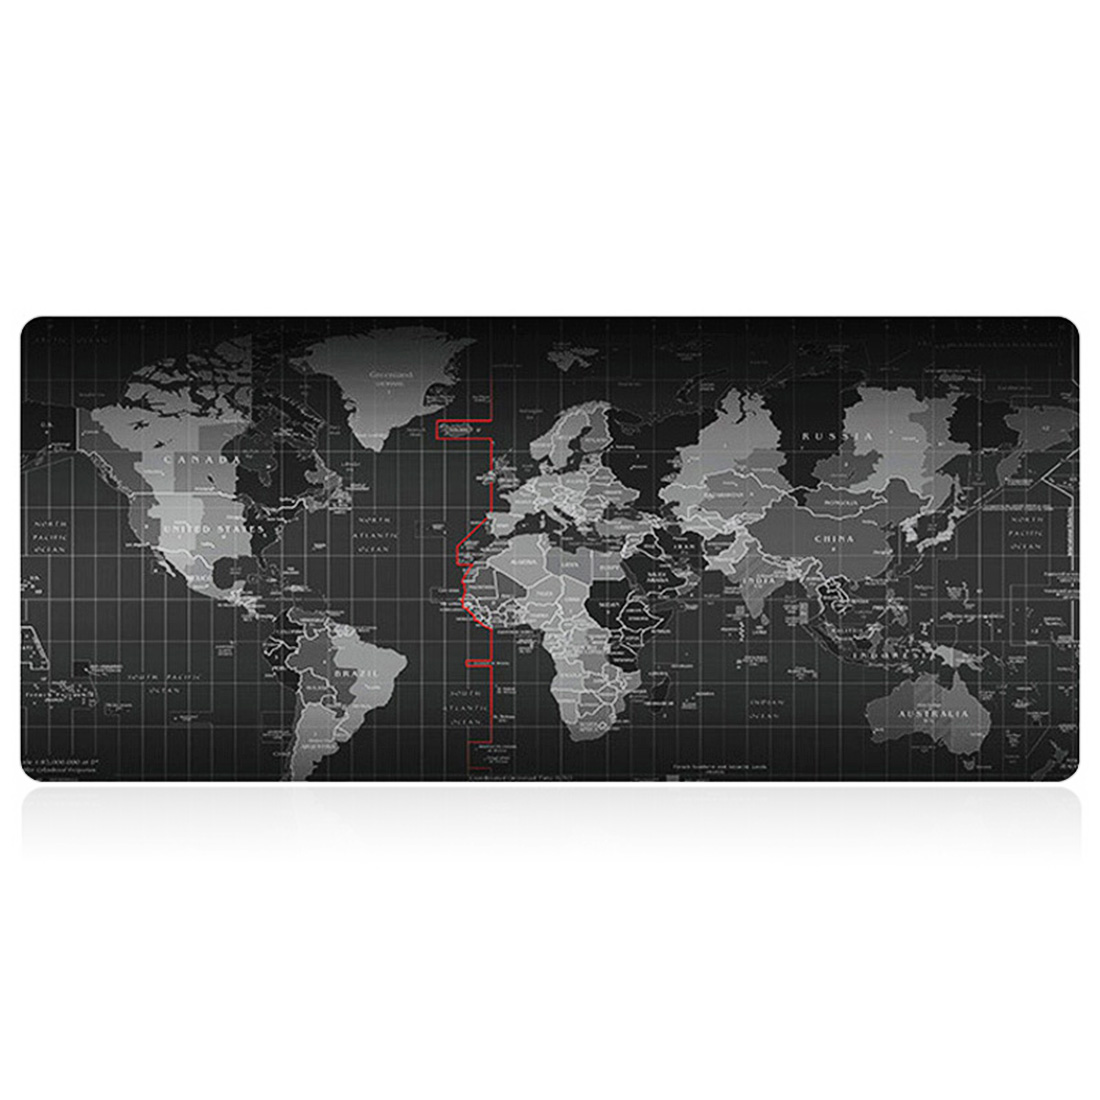 HOT-New Fashion Old World Map Mouse Pad for Mouse Notebook Computer Mousepad Gaming Mouse Mats for Mouse Game maiyaca fashion seller old world map mouse pad 2018 new large pad to mouse notbook computer mousepad gaming mouse mats to mouse